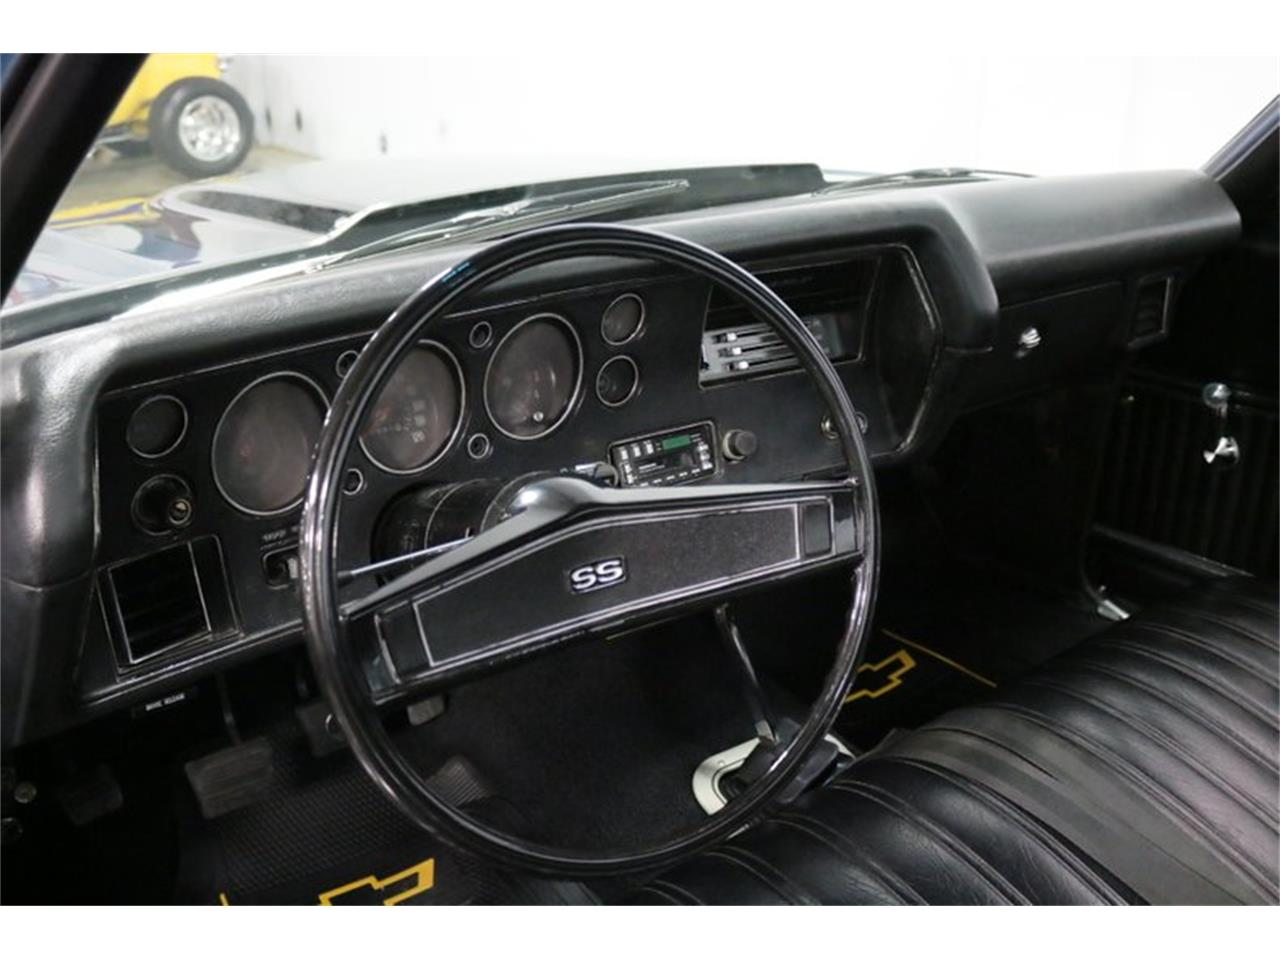 1971 Chevrolet El Camino for sale in Ft Worth, TX – photo 48